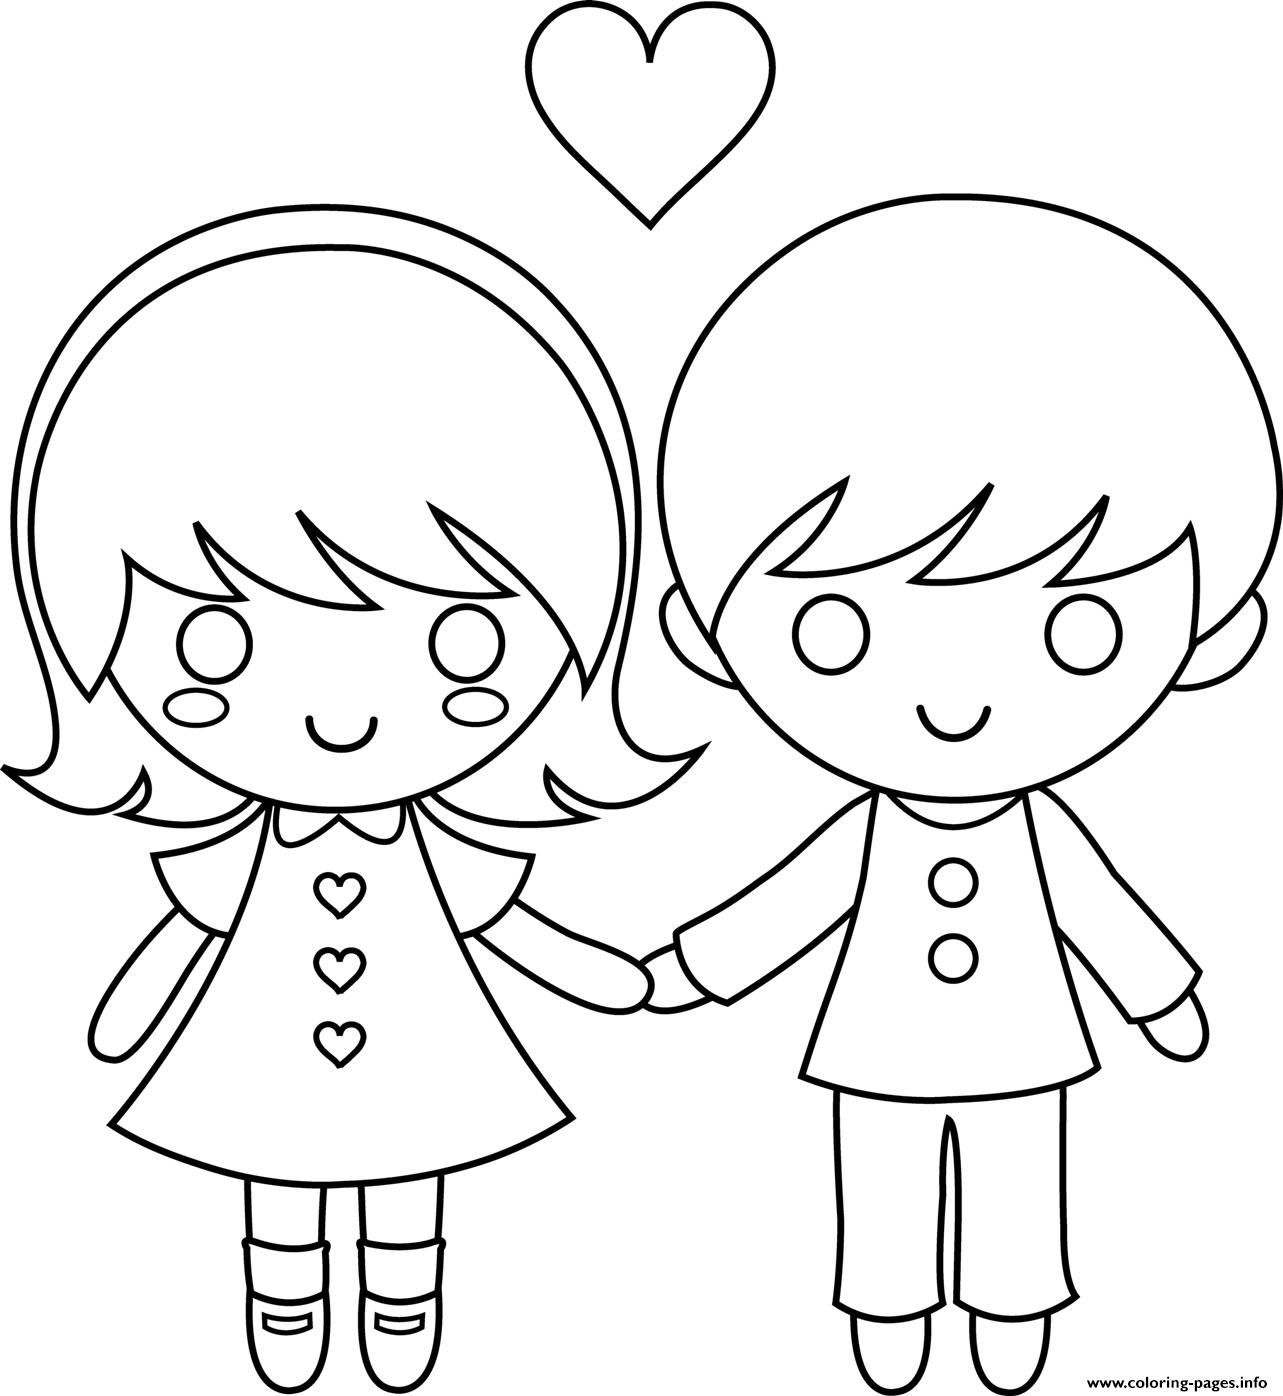 Kids Couple Valentine 6277 Coloring Pages Printable